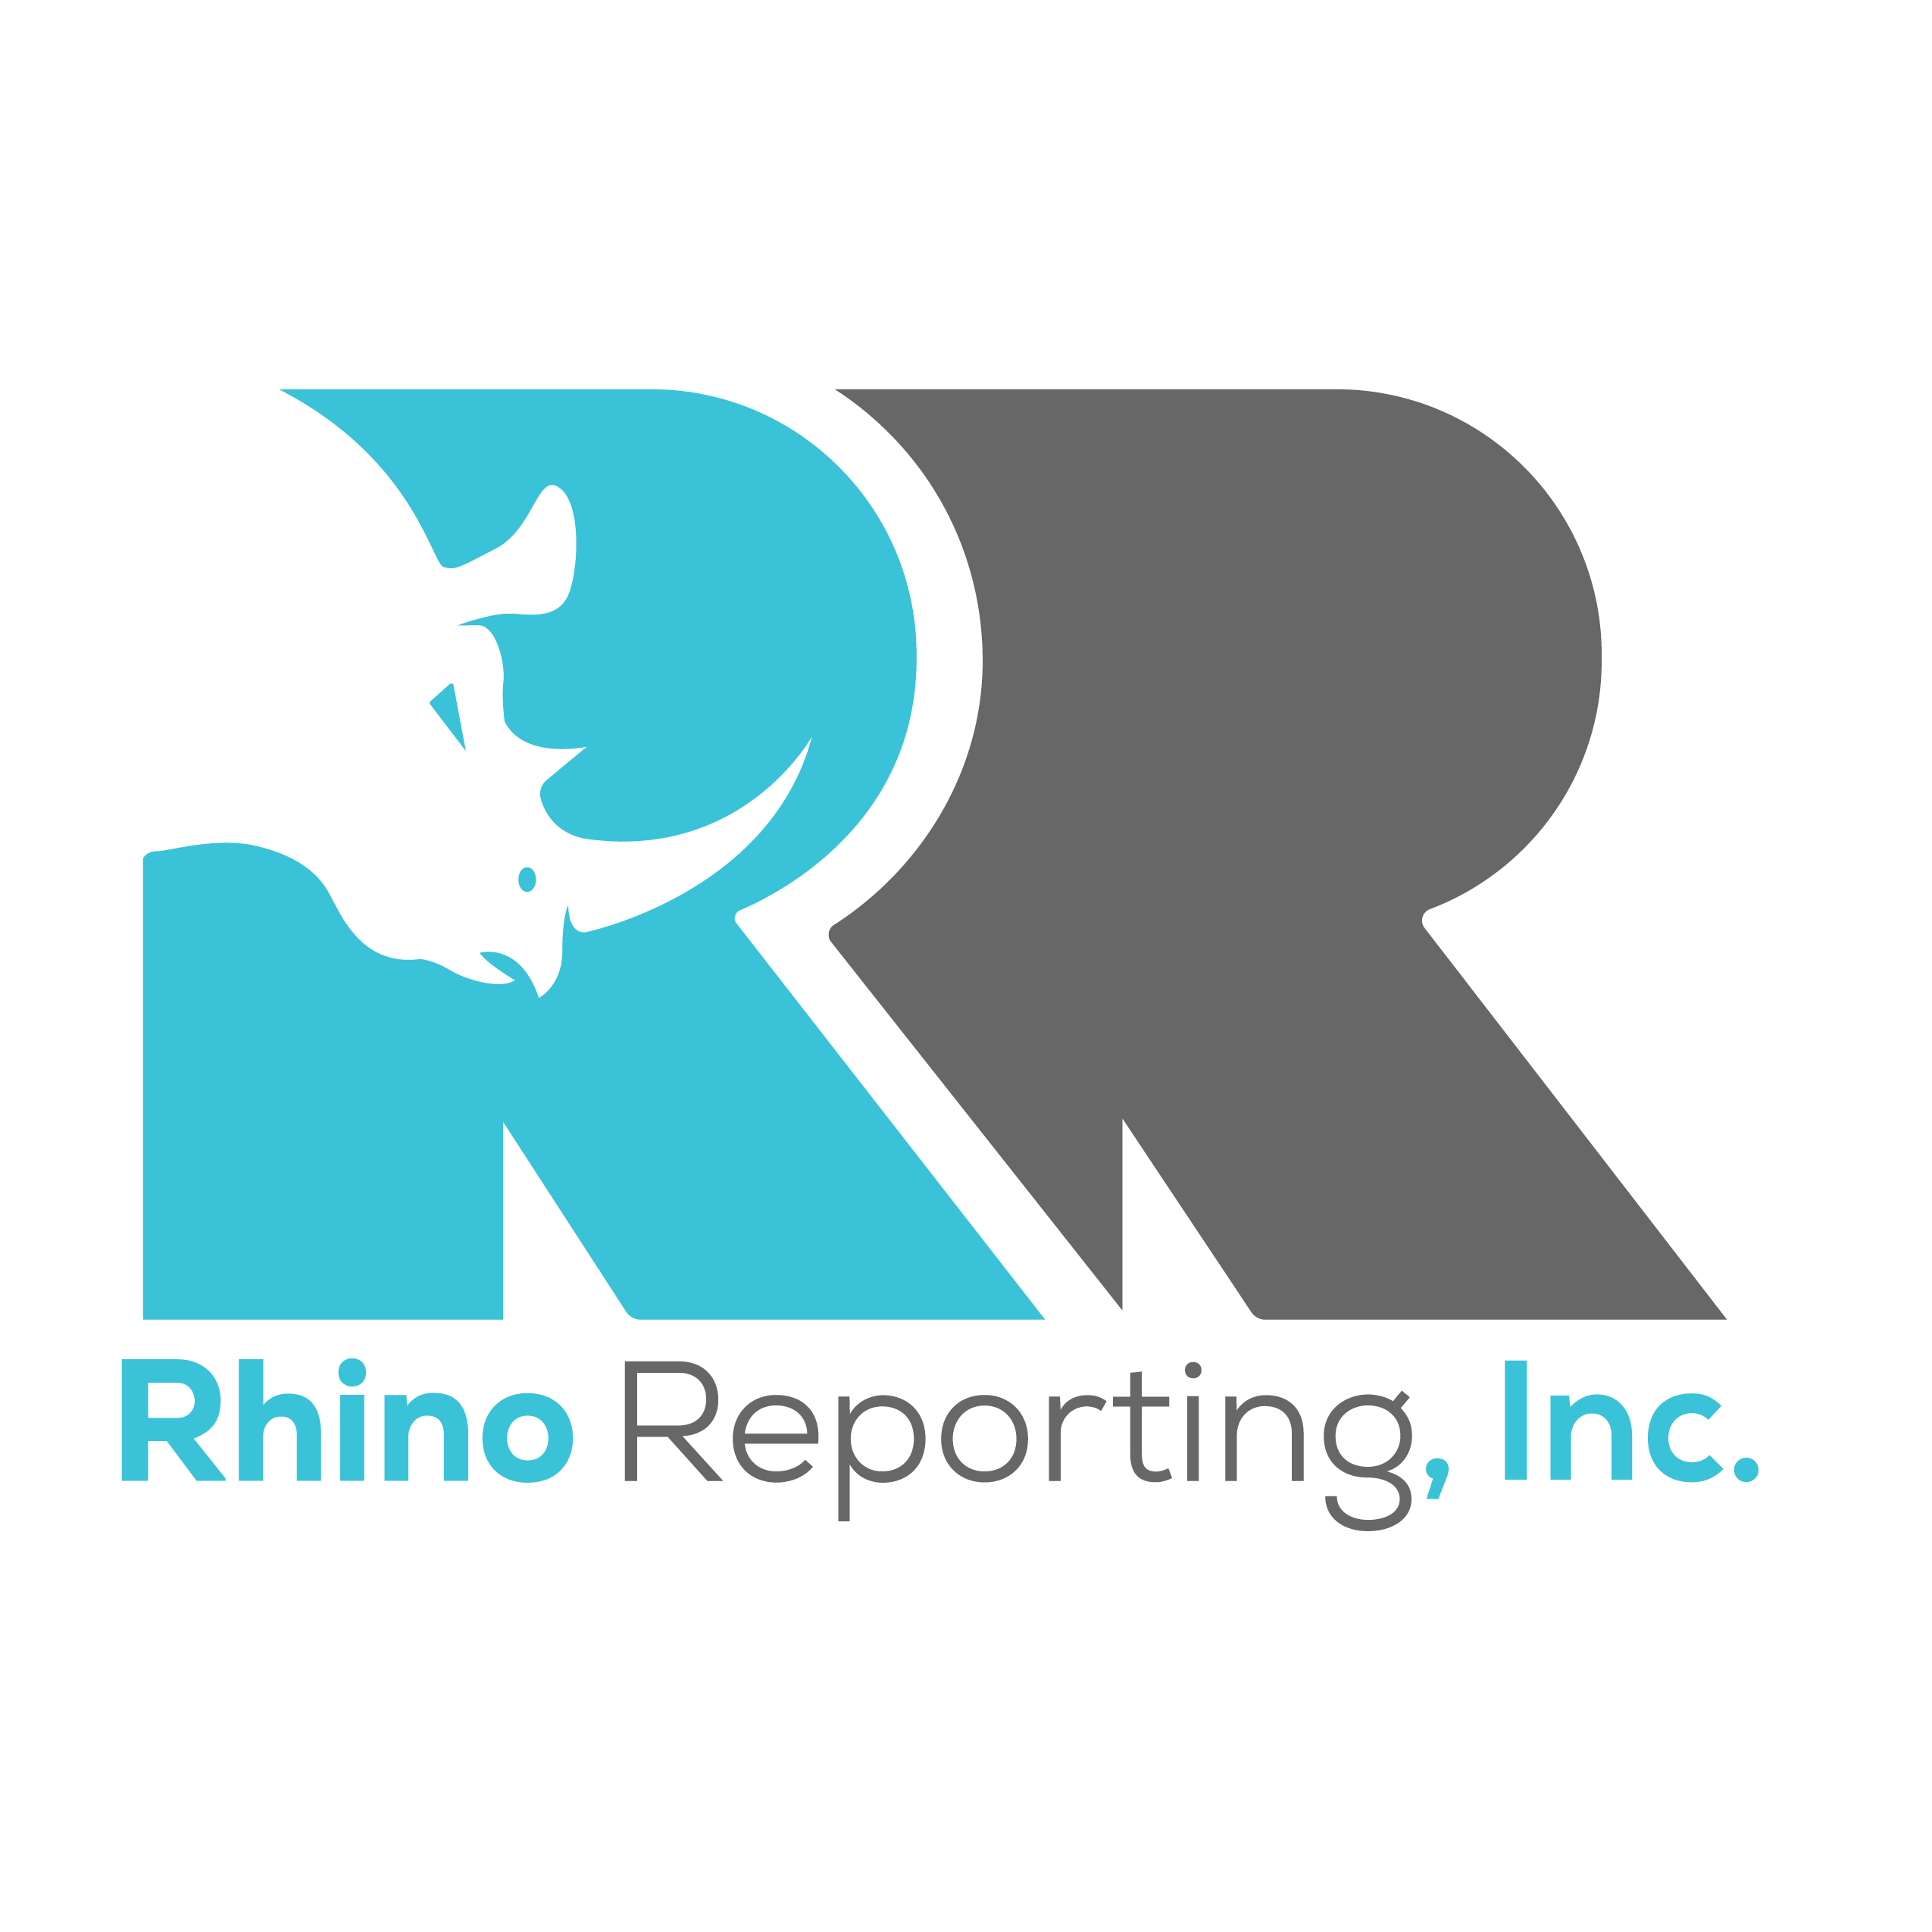 Court Reporting Firm Rhino Reporting Launches On-Time Transcript Initiative